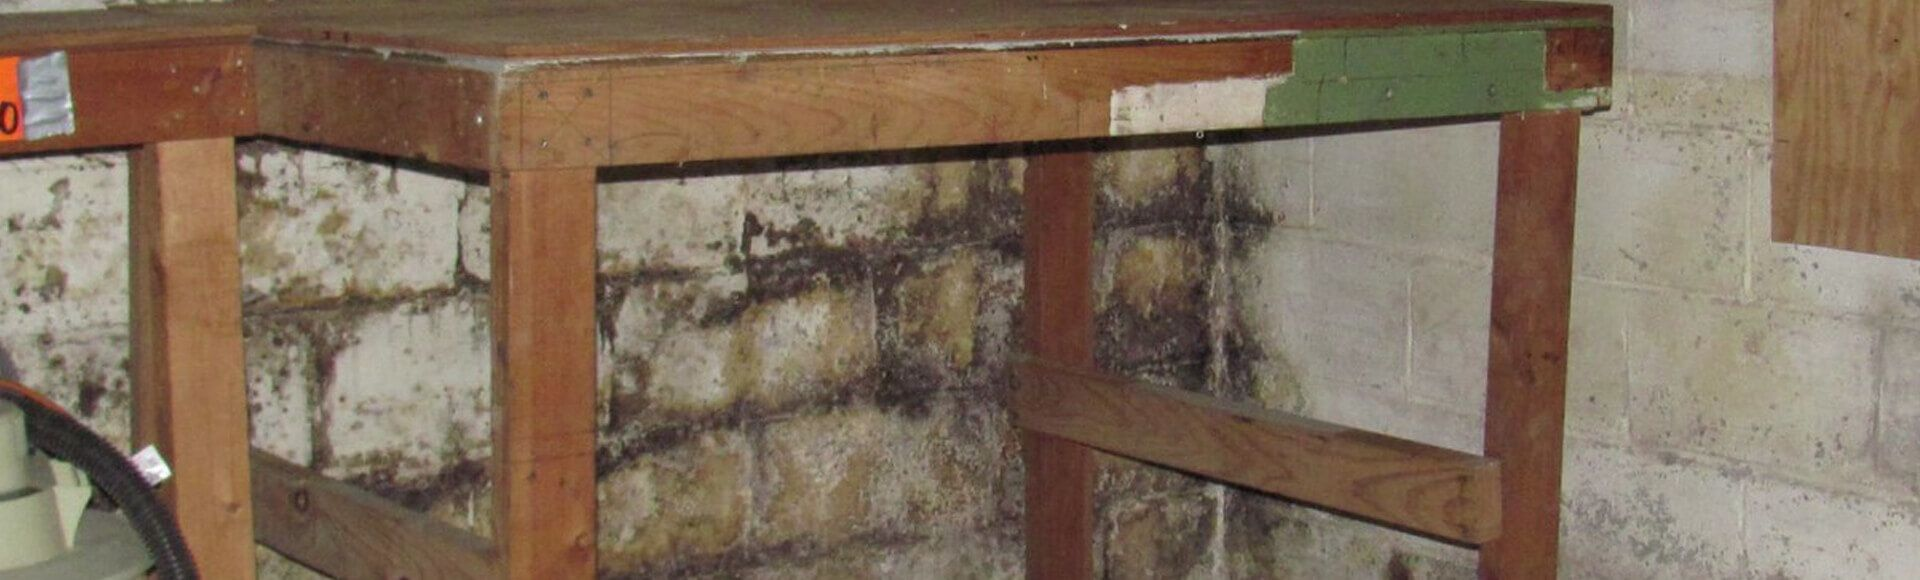 Basement & Crawl Space Mold Remediation Company